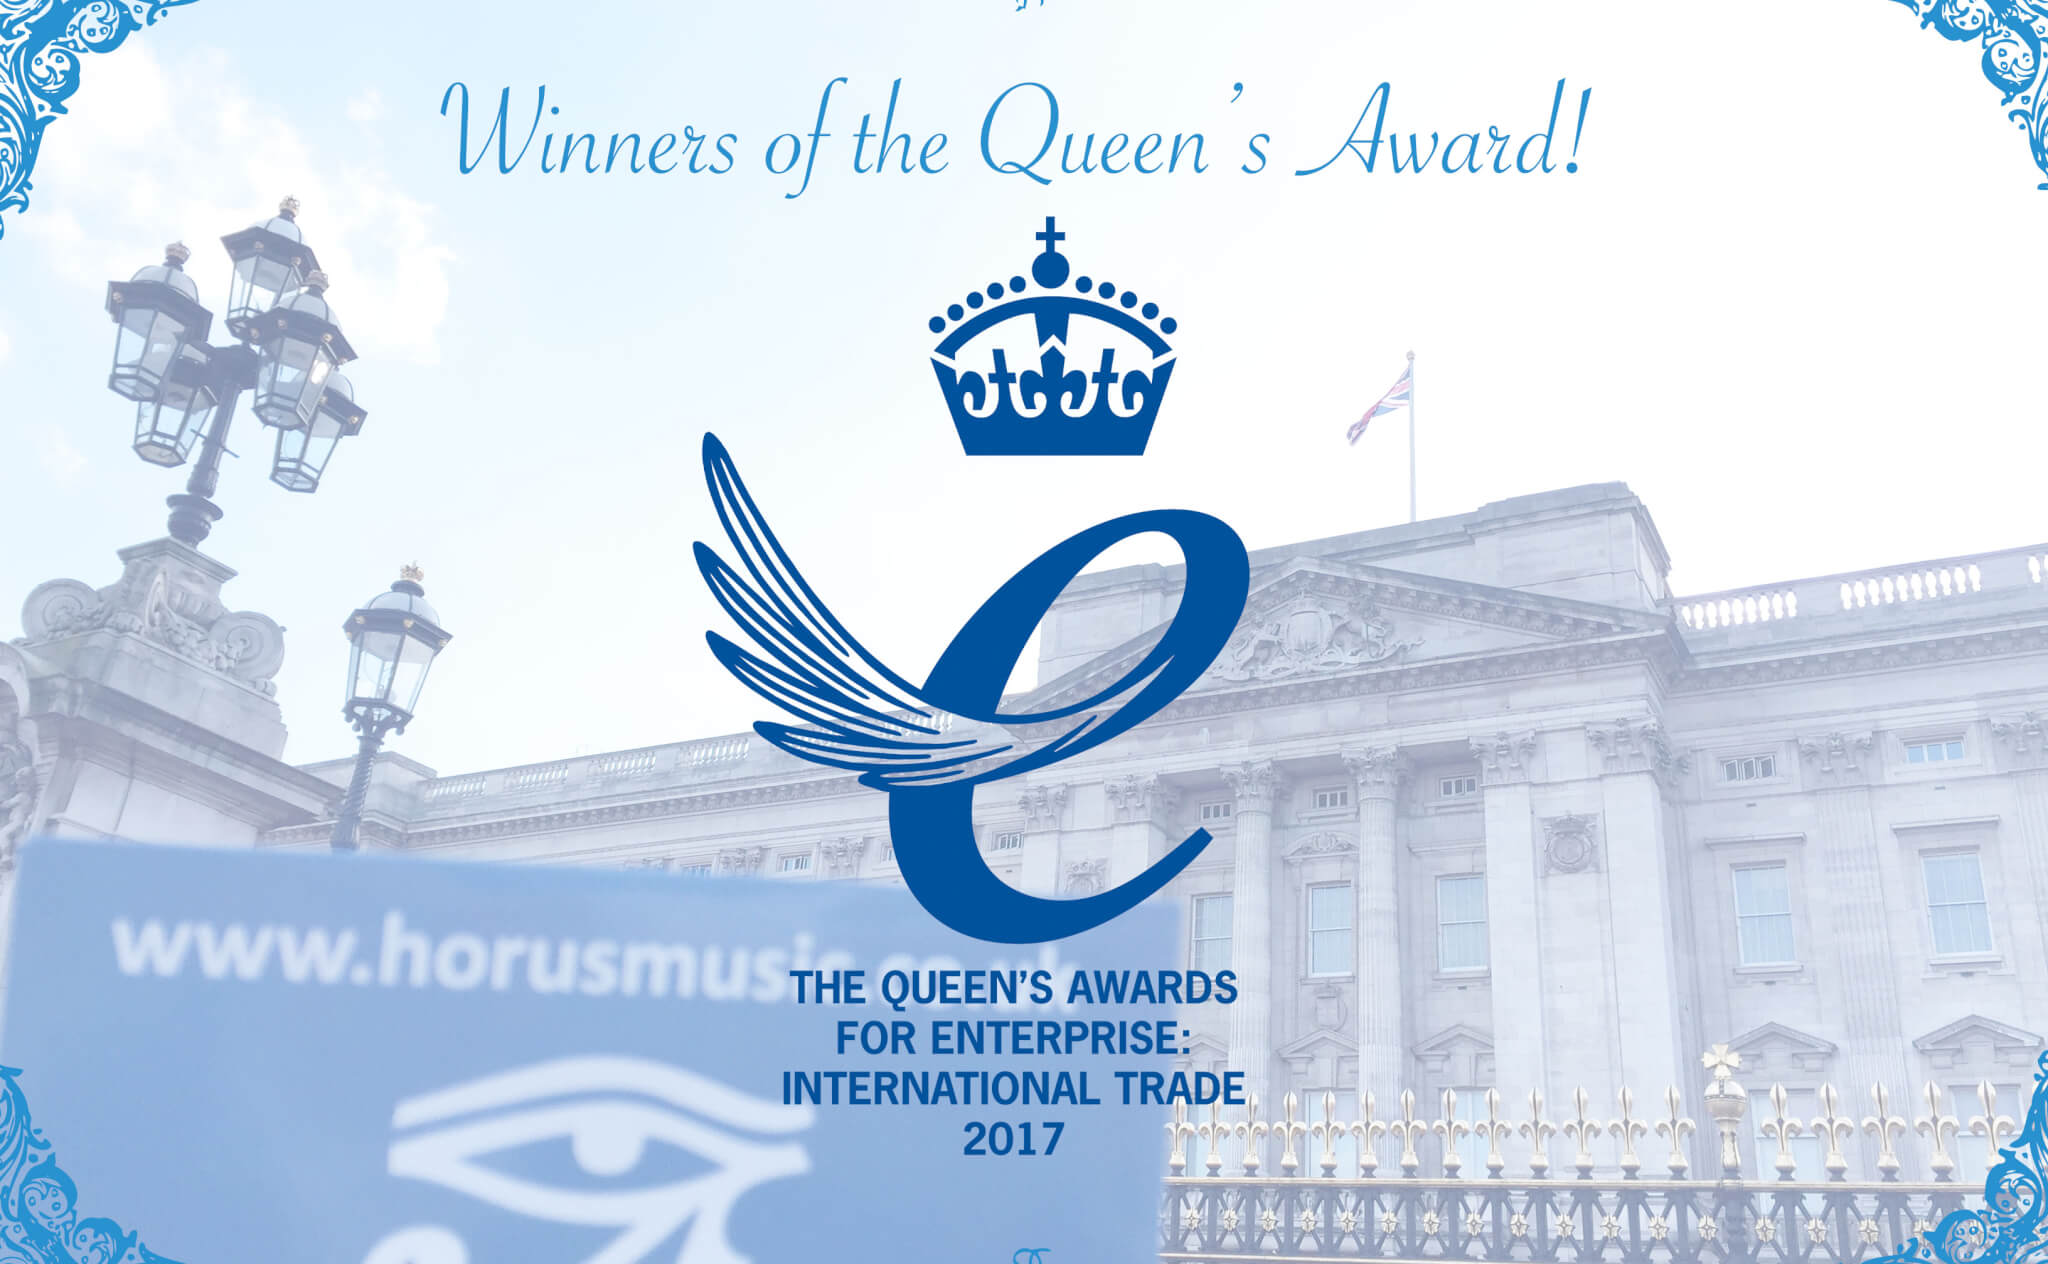 Horus Music wins Queen's Award for Enterprise